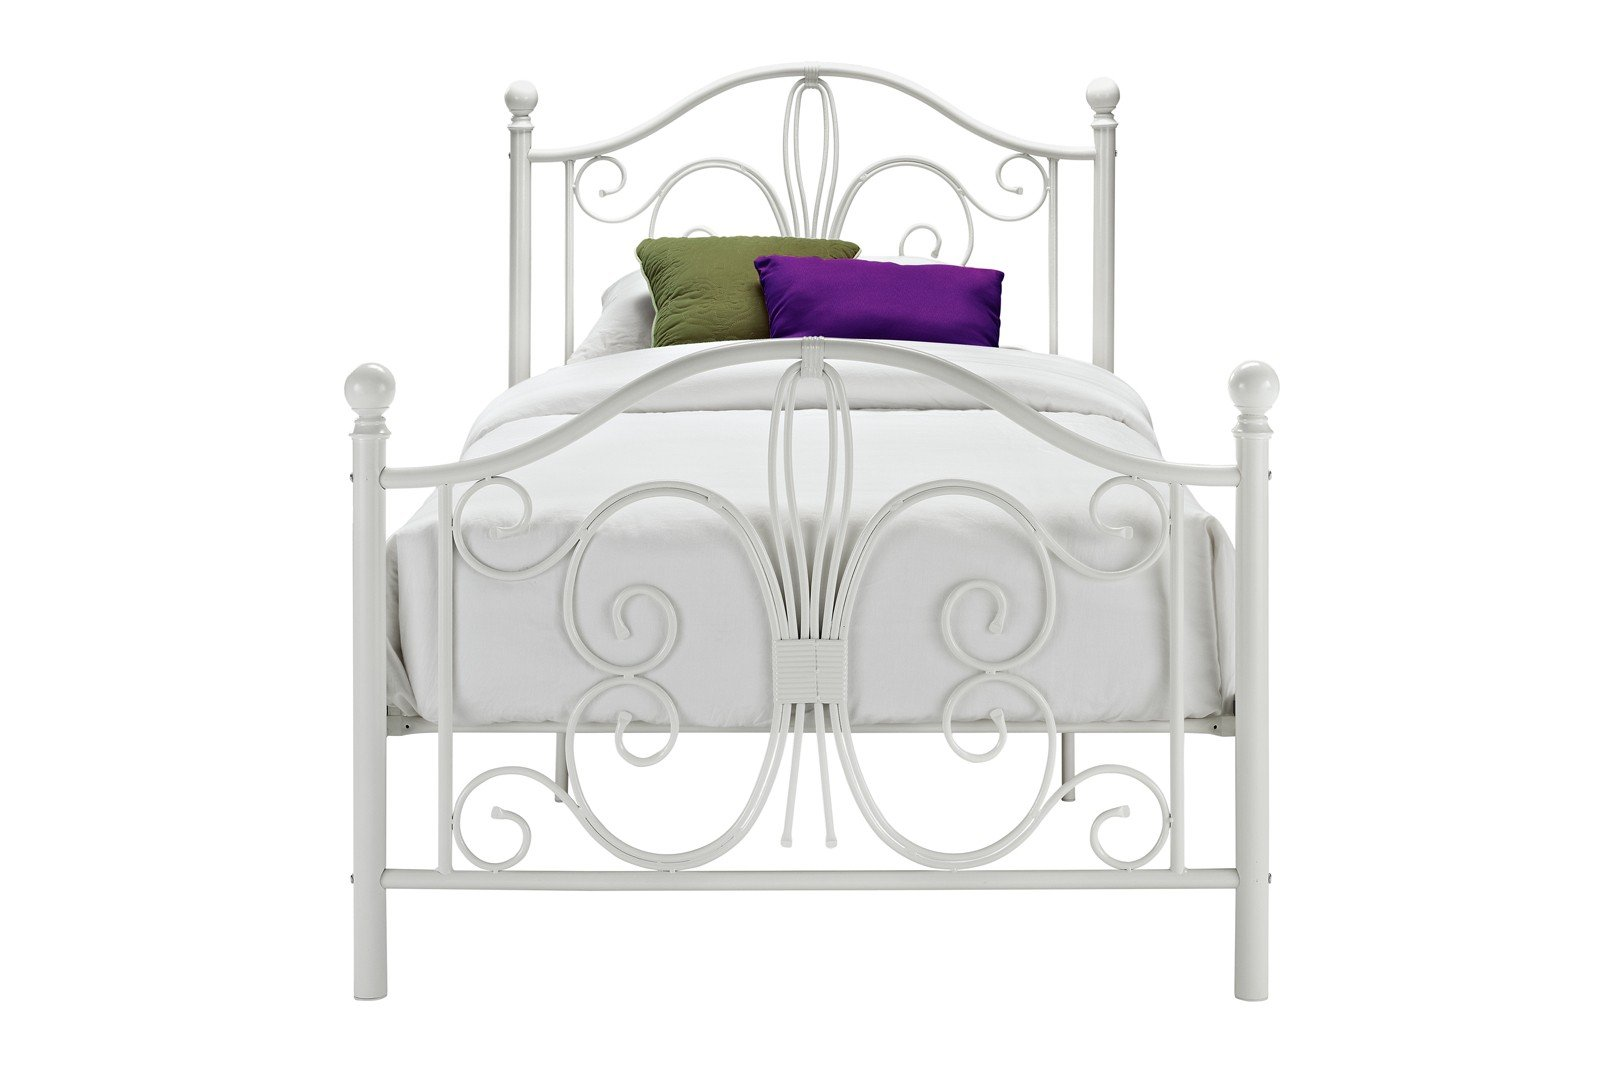 Wayfair Bed Frames Bed Frame Bed Frame Found It At Taro: DHP Bombay Metal Bed, Twin, White